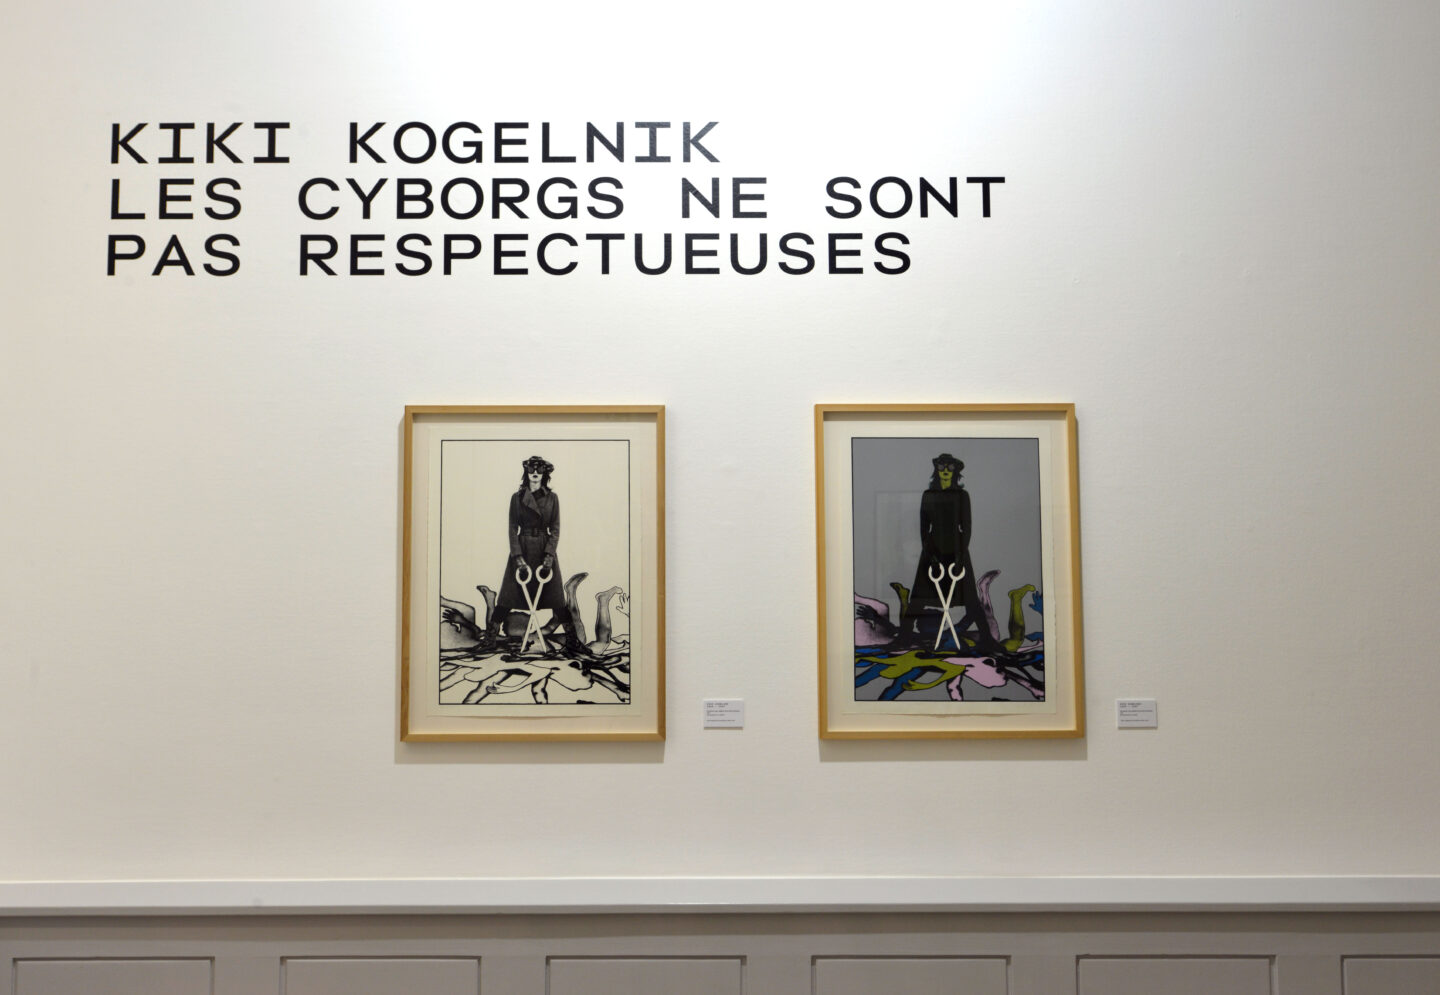 Exhibition View Kiki Kogelnik «Les cyborgs ne sont pas respectueuses» at Musée des beaux-arts de La Chaux-de-Fonds, La Chaux-de-Fonds, 2020 / © Kiki Kogelnik Foundation. All rights reserved